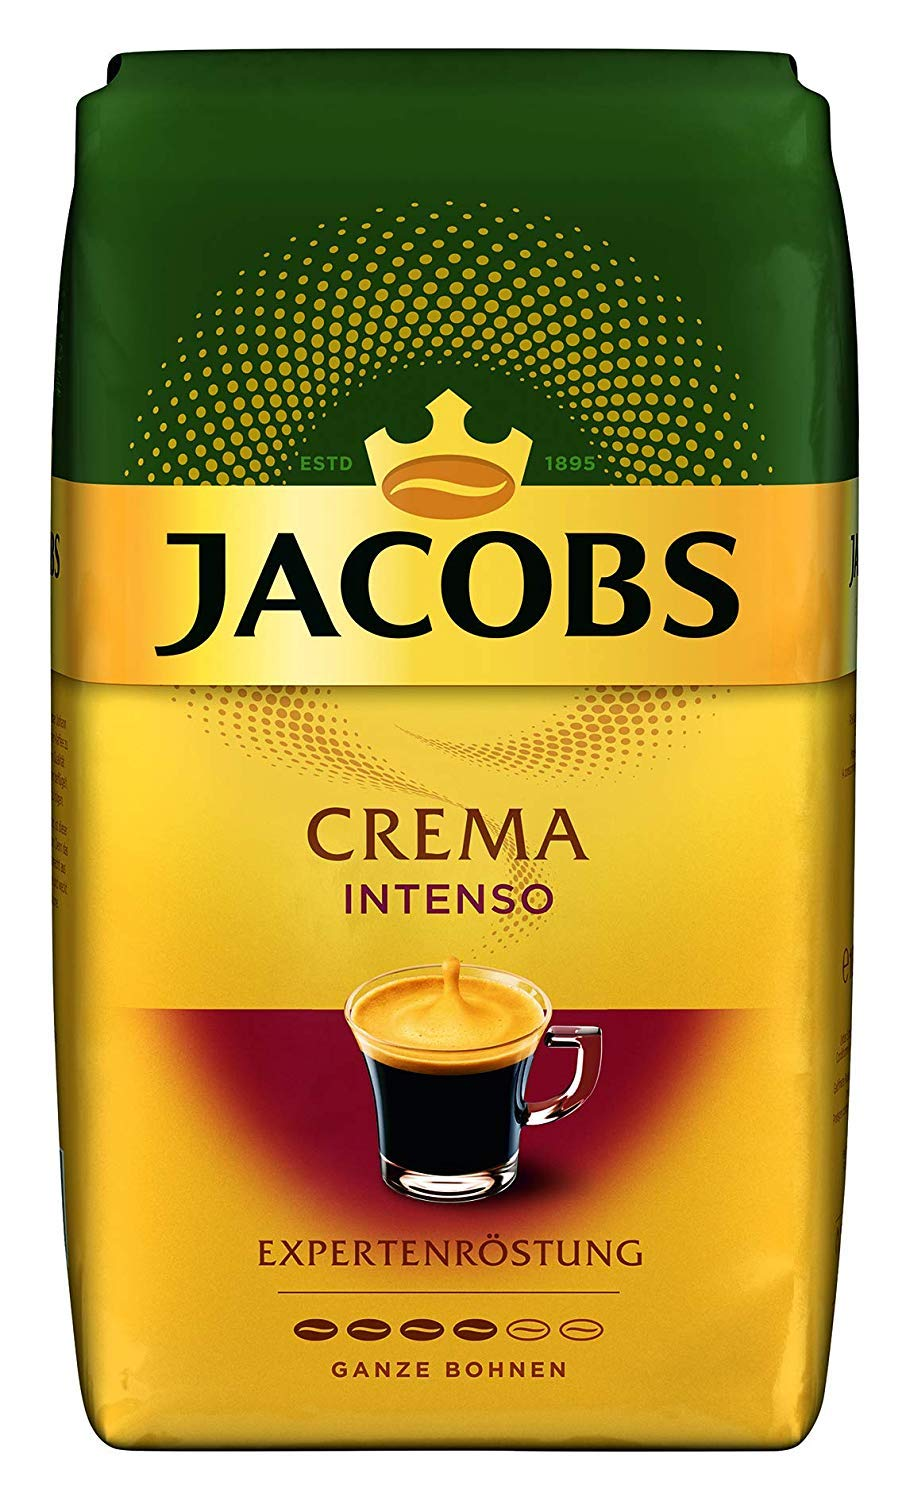 Jacobs Crema Intenso Whole Bean Coffee 1000 Gram / 35.2 Ounce (Pack of 1)